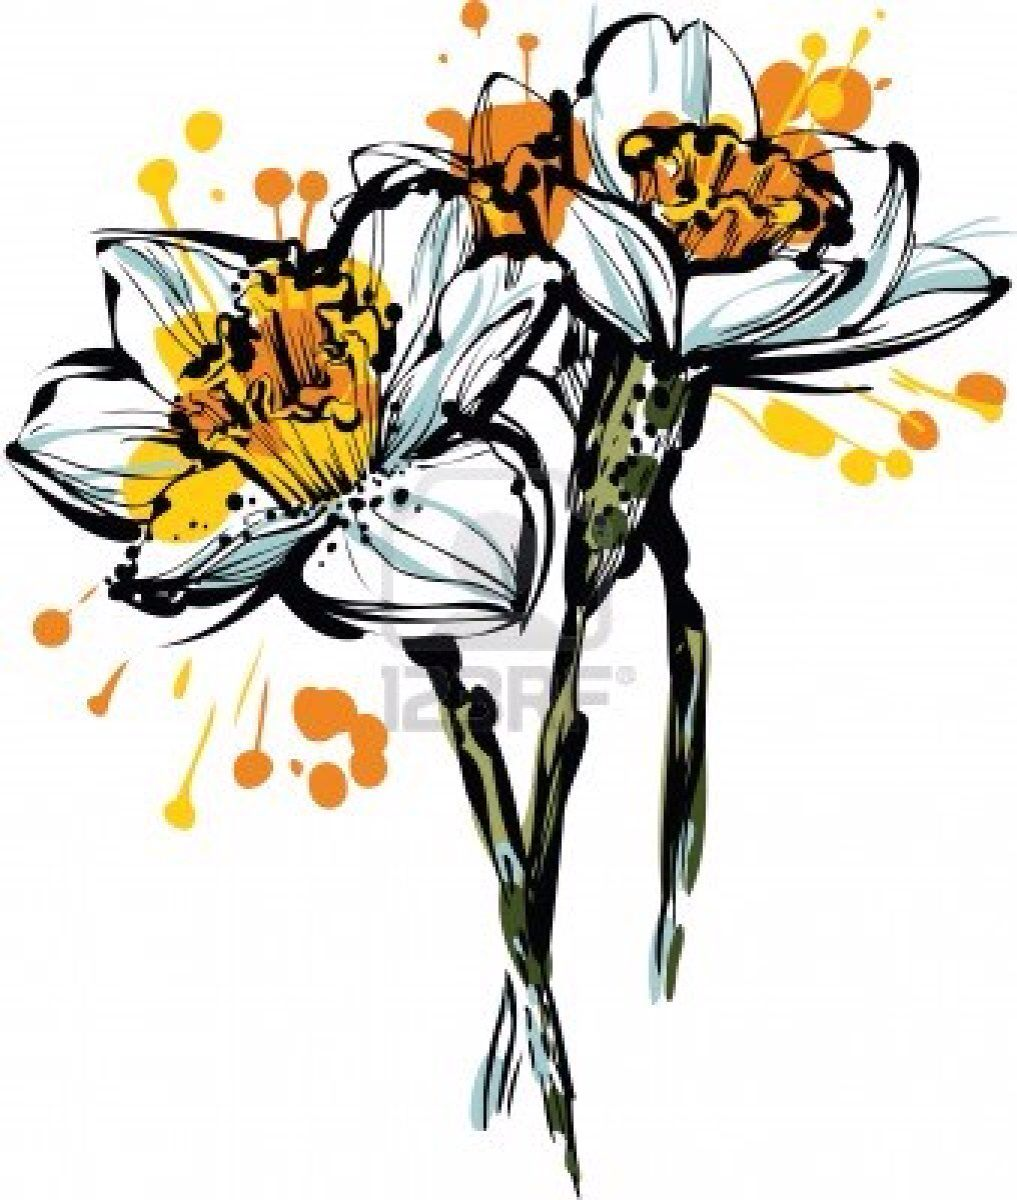 December Birth Flower Tattoo Black And White: Narcissus Flower Tattoos, Narcissus Tattoo